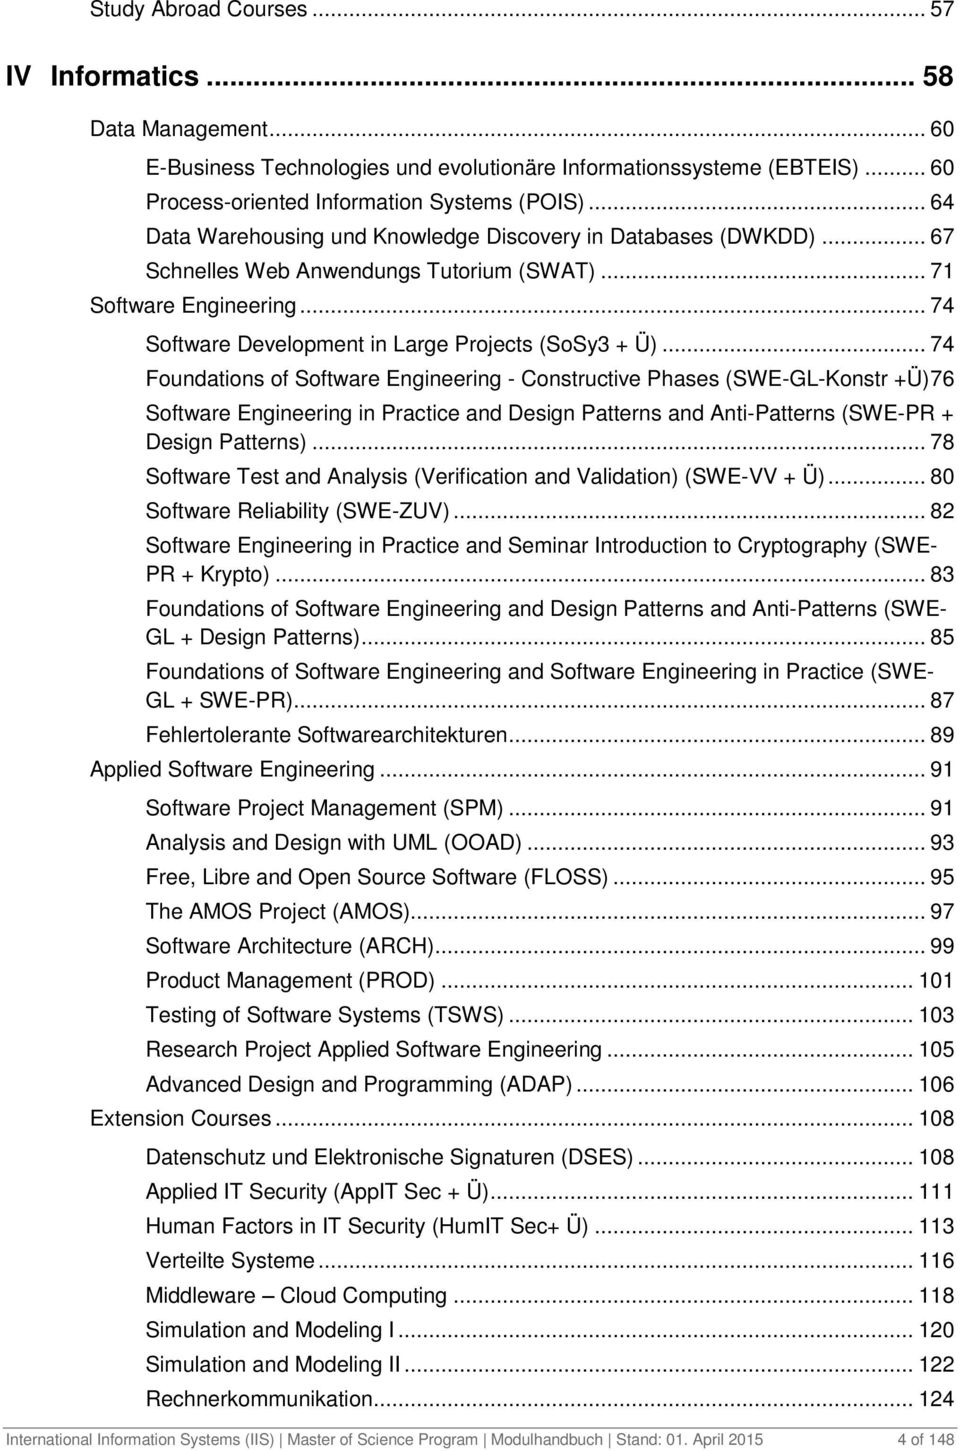 .. 74 Foundations of Software Engineering - Constructive Phases (SWE-GL-Konstr +Ü) 76 Software Engineering in Practice and Design Patterns and Anti-Patterns (SWE-PR + Design Patterns).